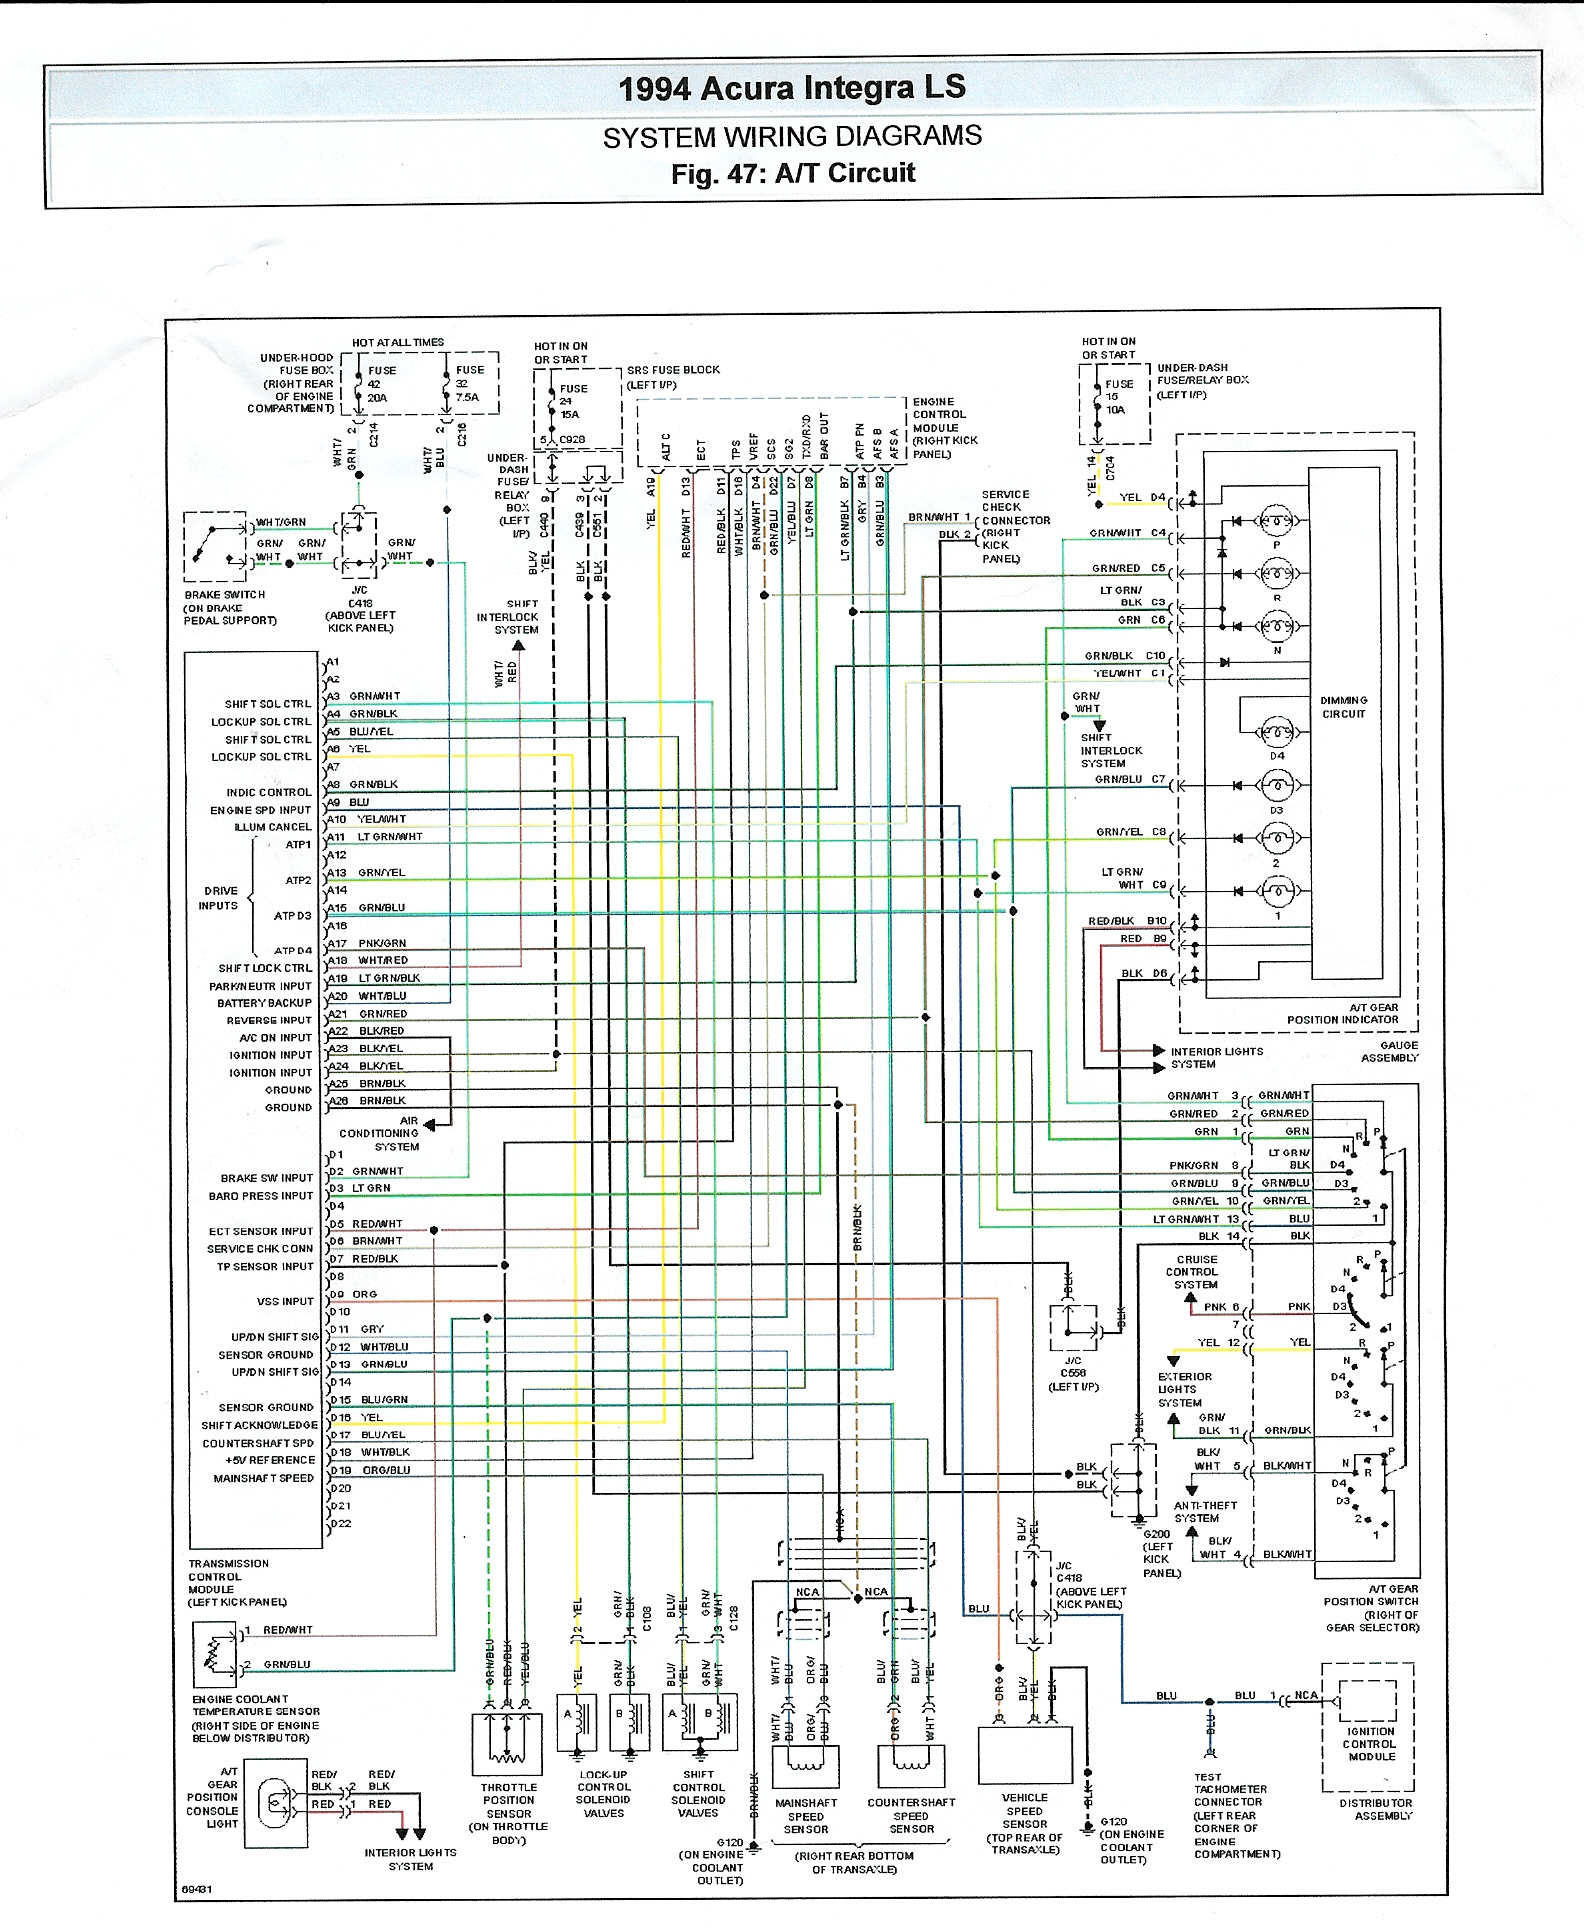 1997 acura integra stereo wiring diagram 2 pole toggle switch tcm schematic for auto swap honda tech